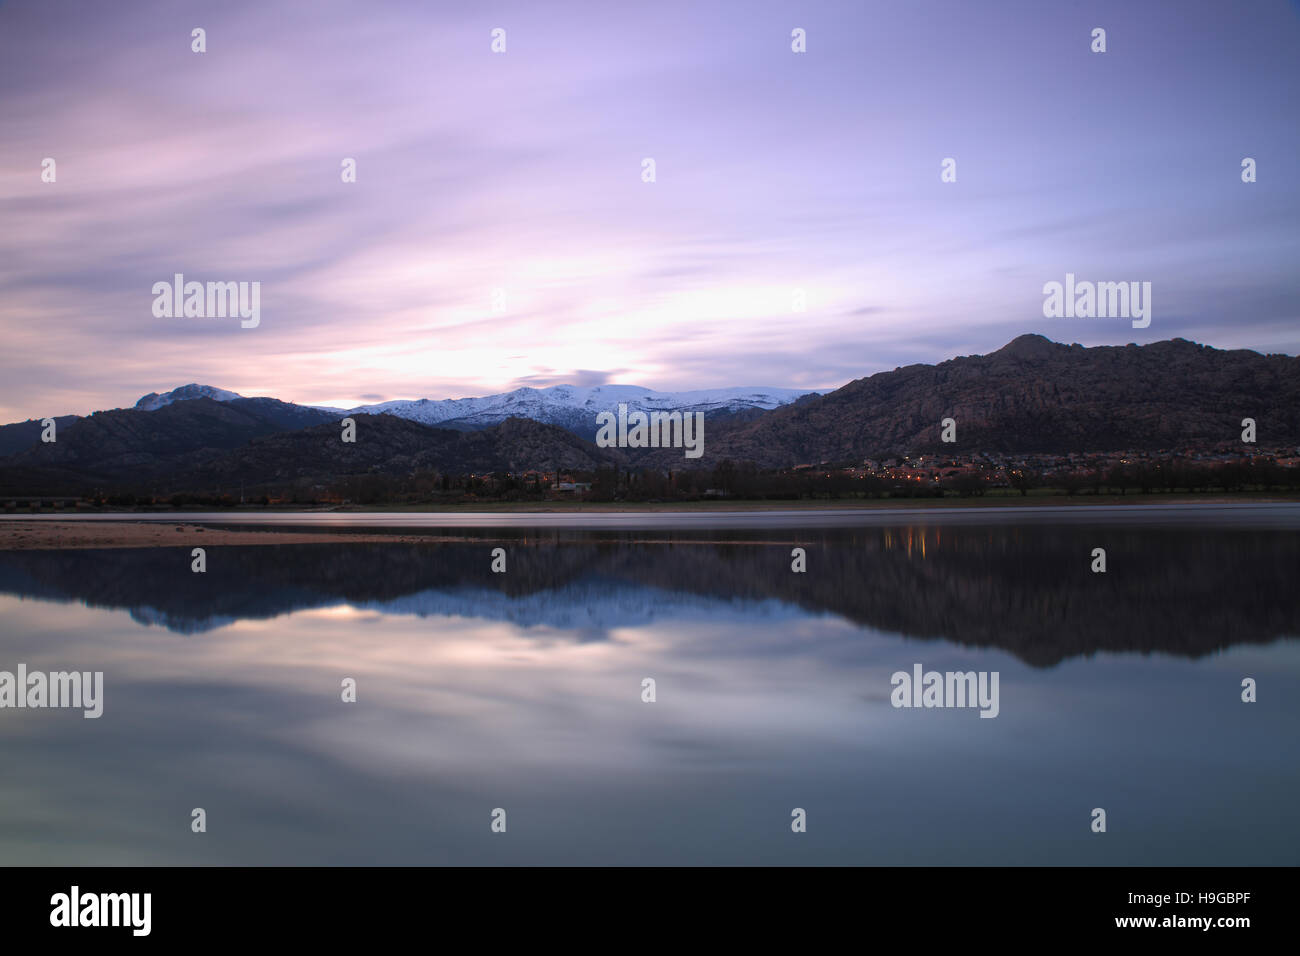 Dusk on Lake Santillana, Manzanares del Real, Spain Stock Photo